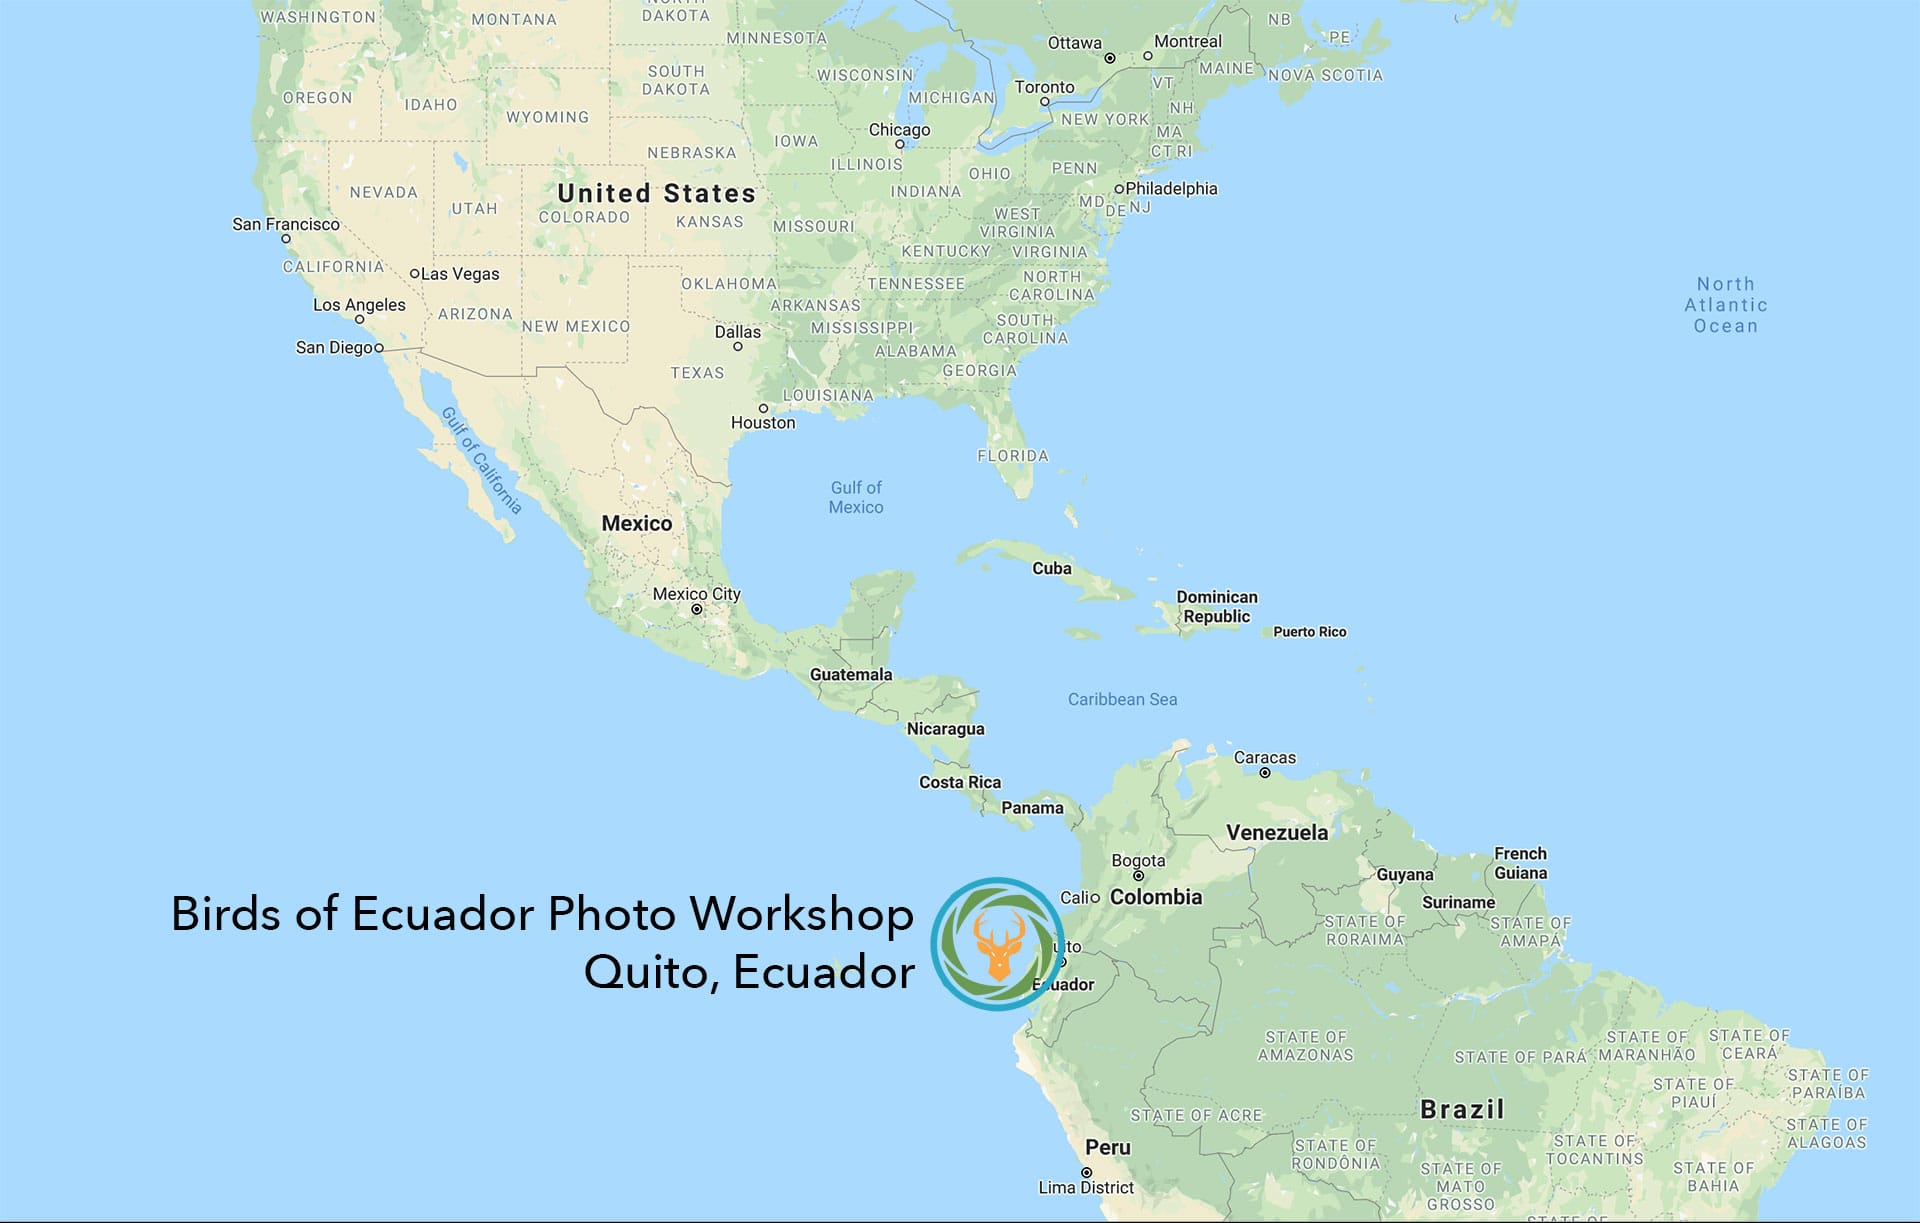 Birds of Ecuador Photography Workshop Map